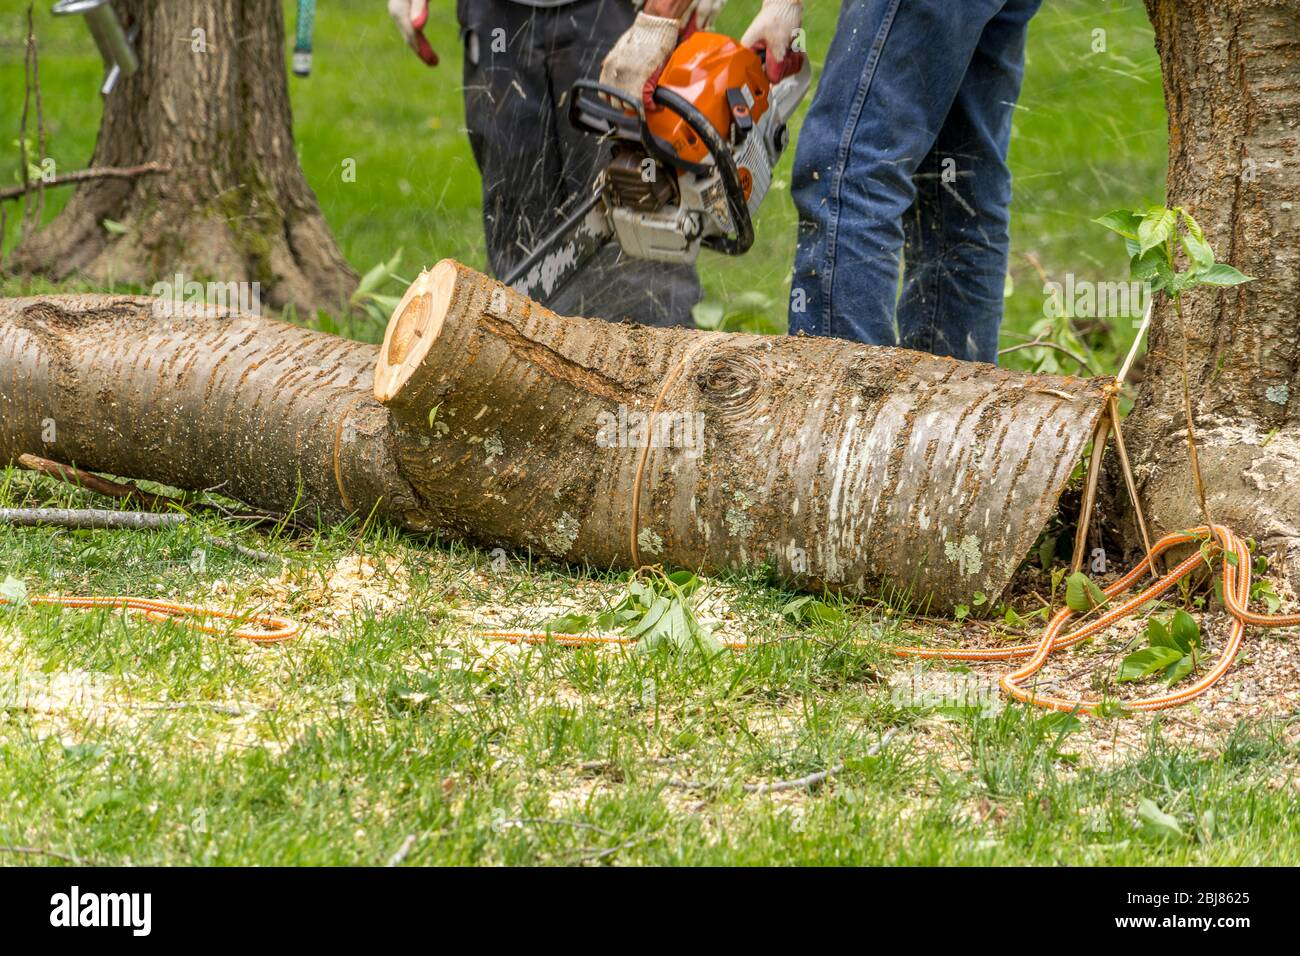 Wood cutter, arborist using an electric chainsaw chopping up a tree Stock Photo